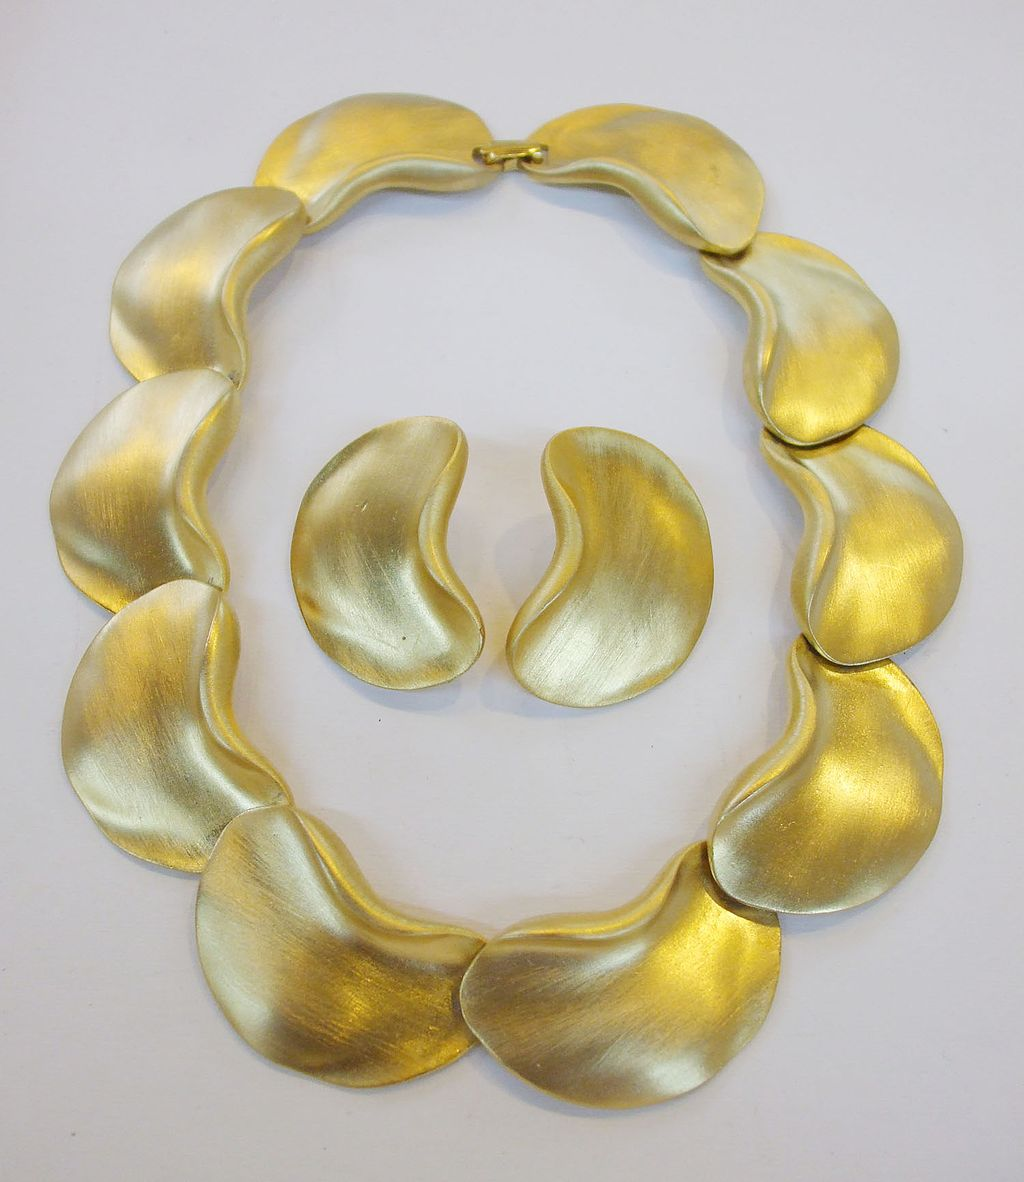 1980s Matte Finish Bean Shaped Necklace and Earrings